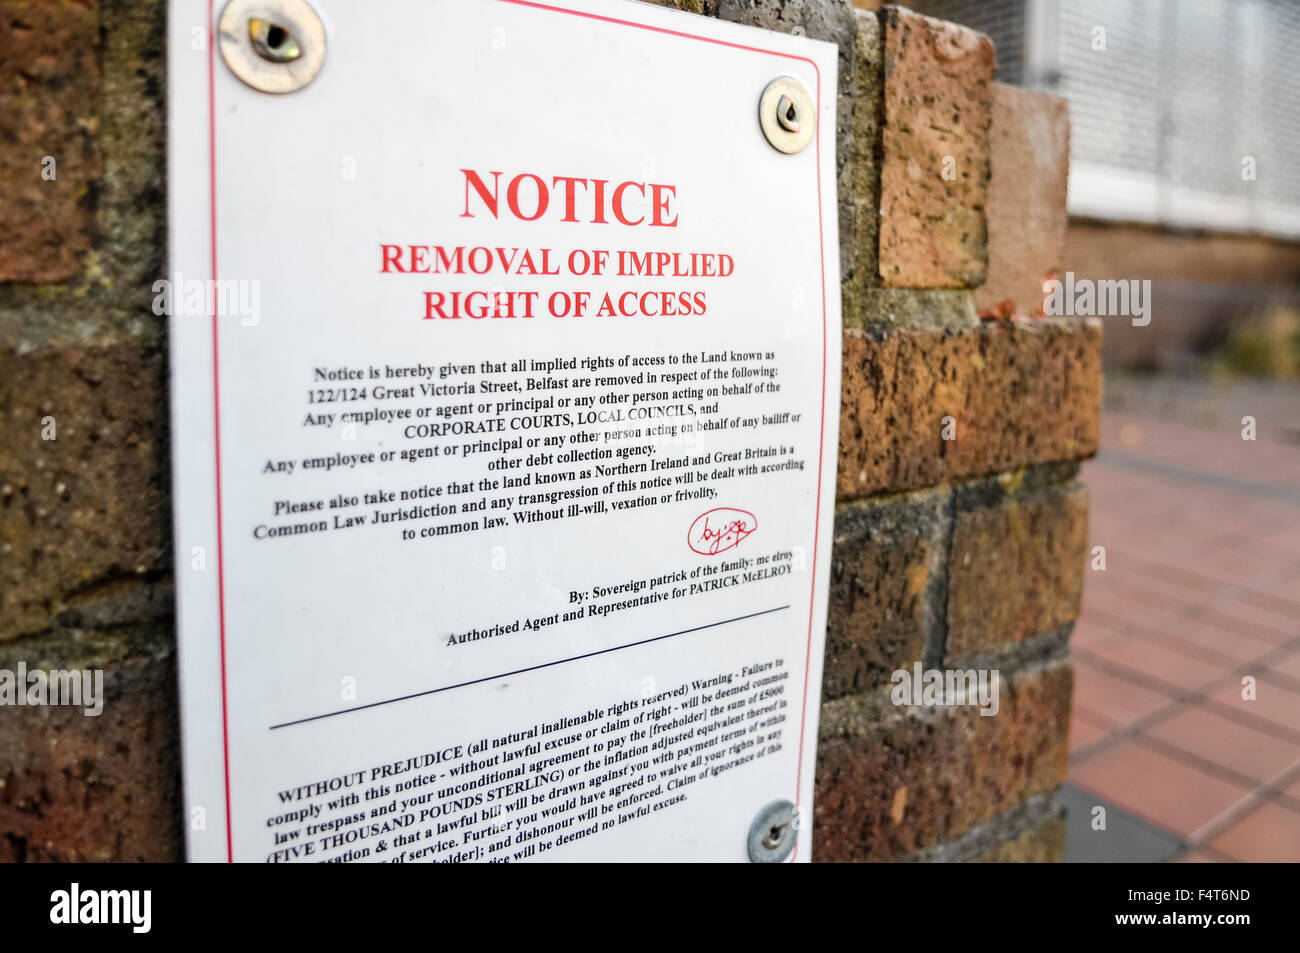 Notice of removal of implied right of access at private property in Belfast - Stock Image